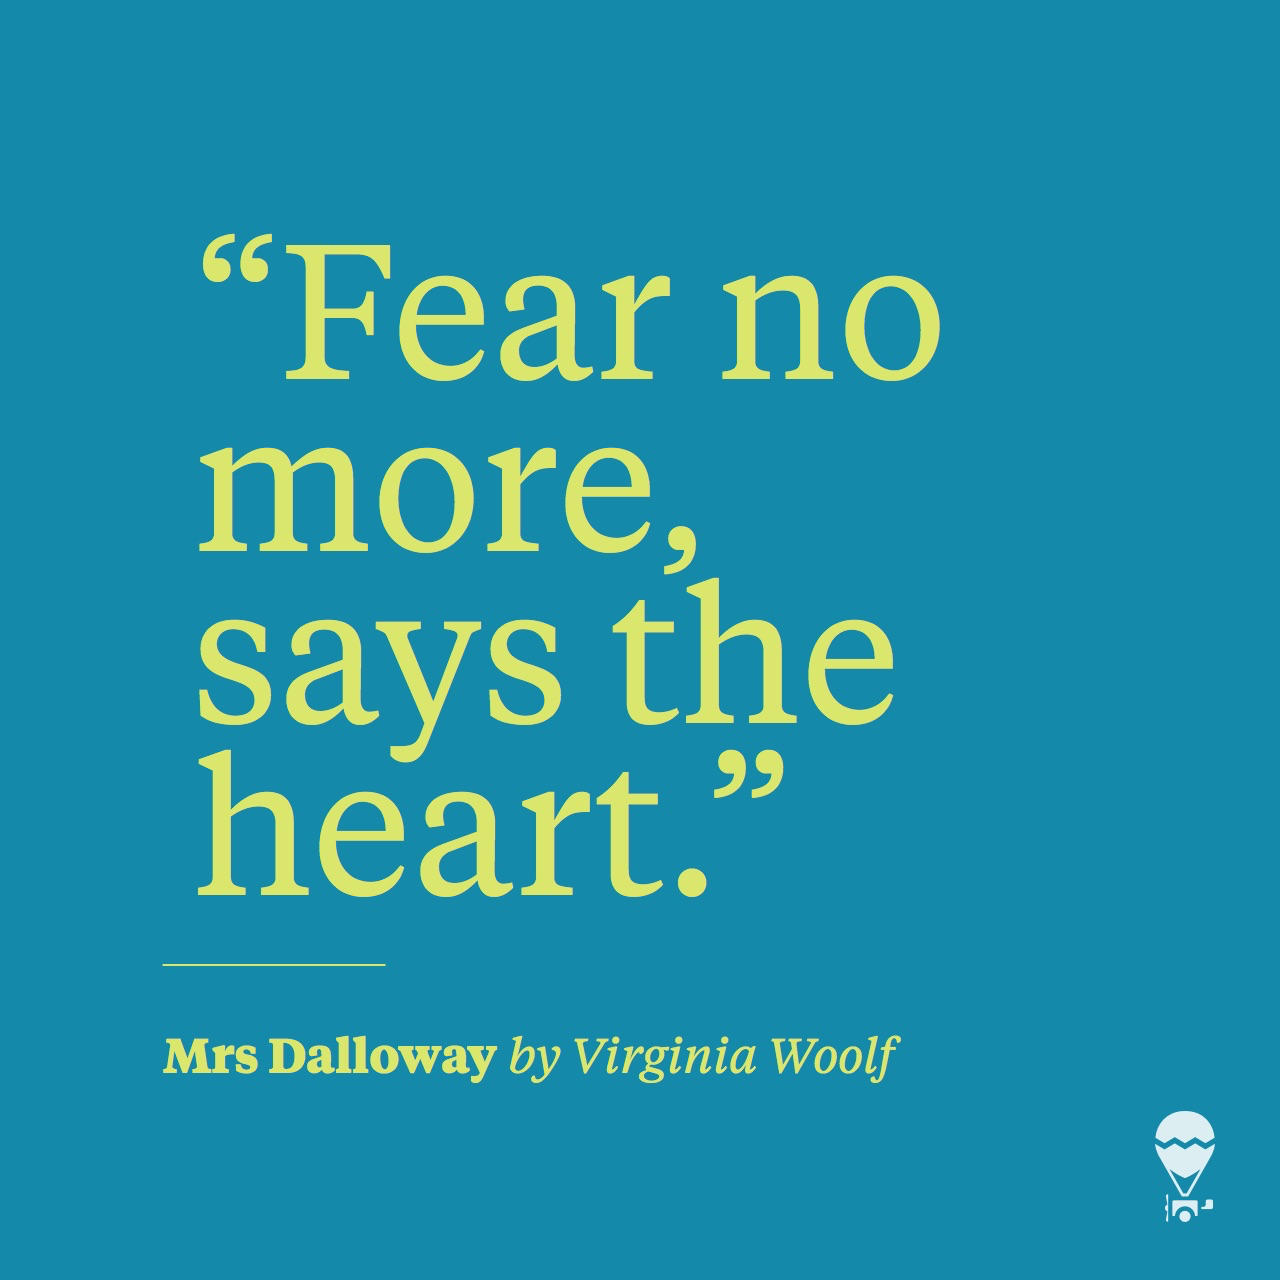 Life Cover Quotes 3 Virginia Woolf's Mrs Dalloway  Blloon Loves Quotes  Pinterest